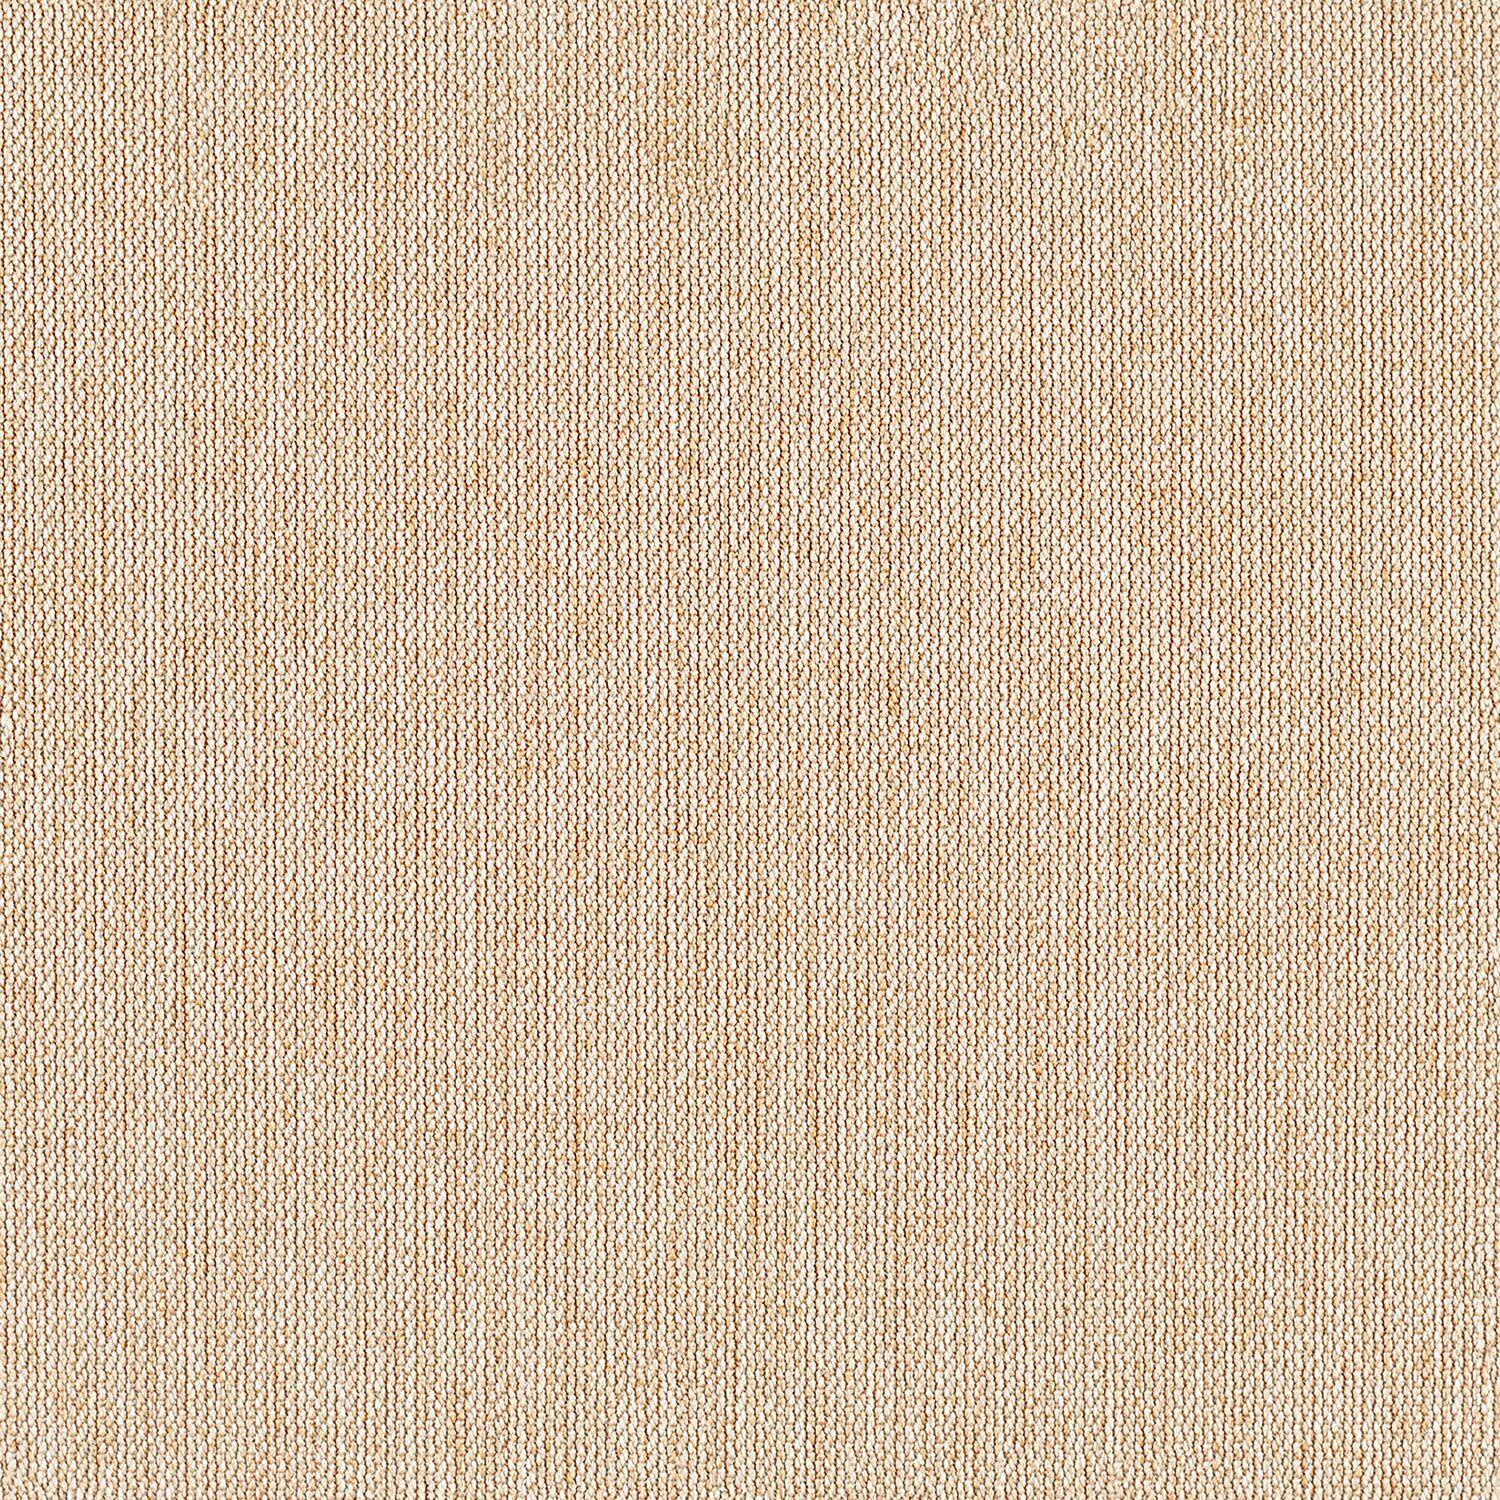 Percept - Constant - 4040 - 23 - Half Yard Tileable Swatches